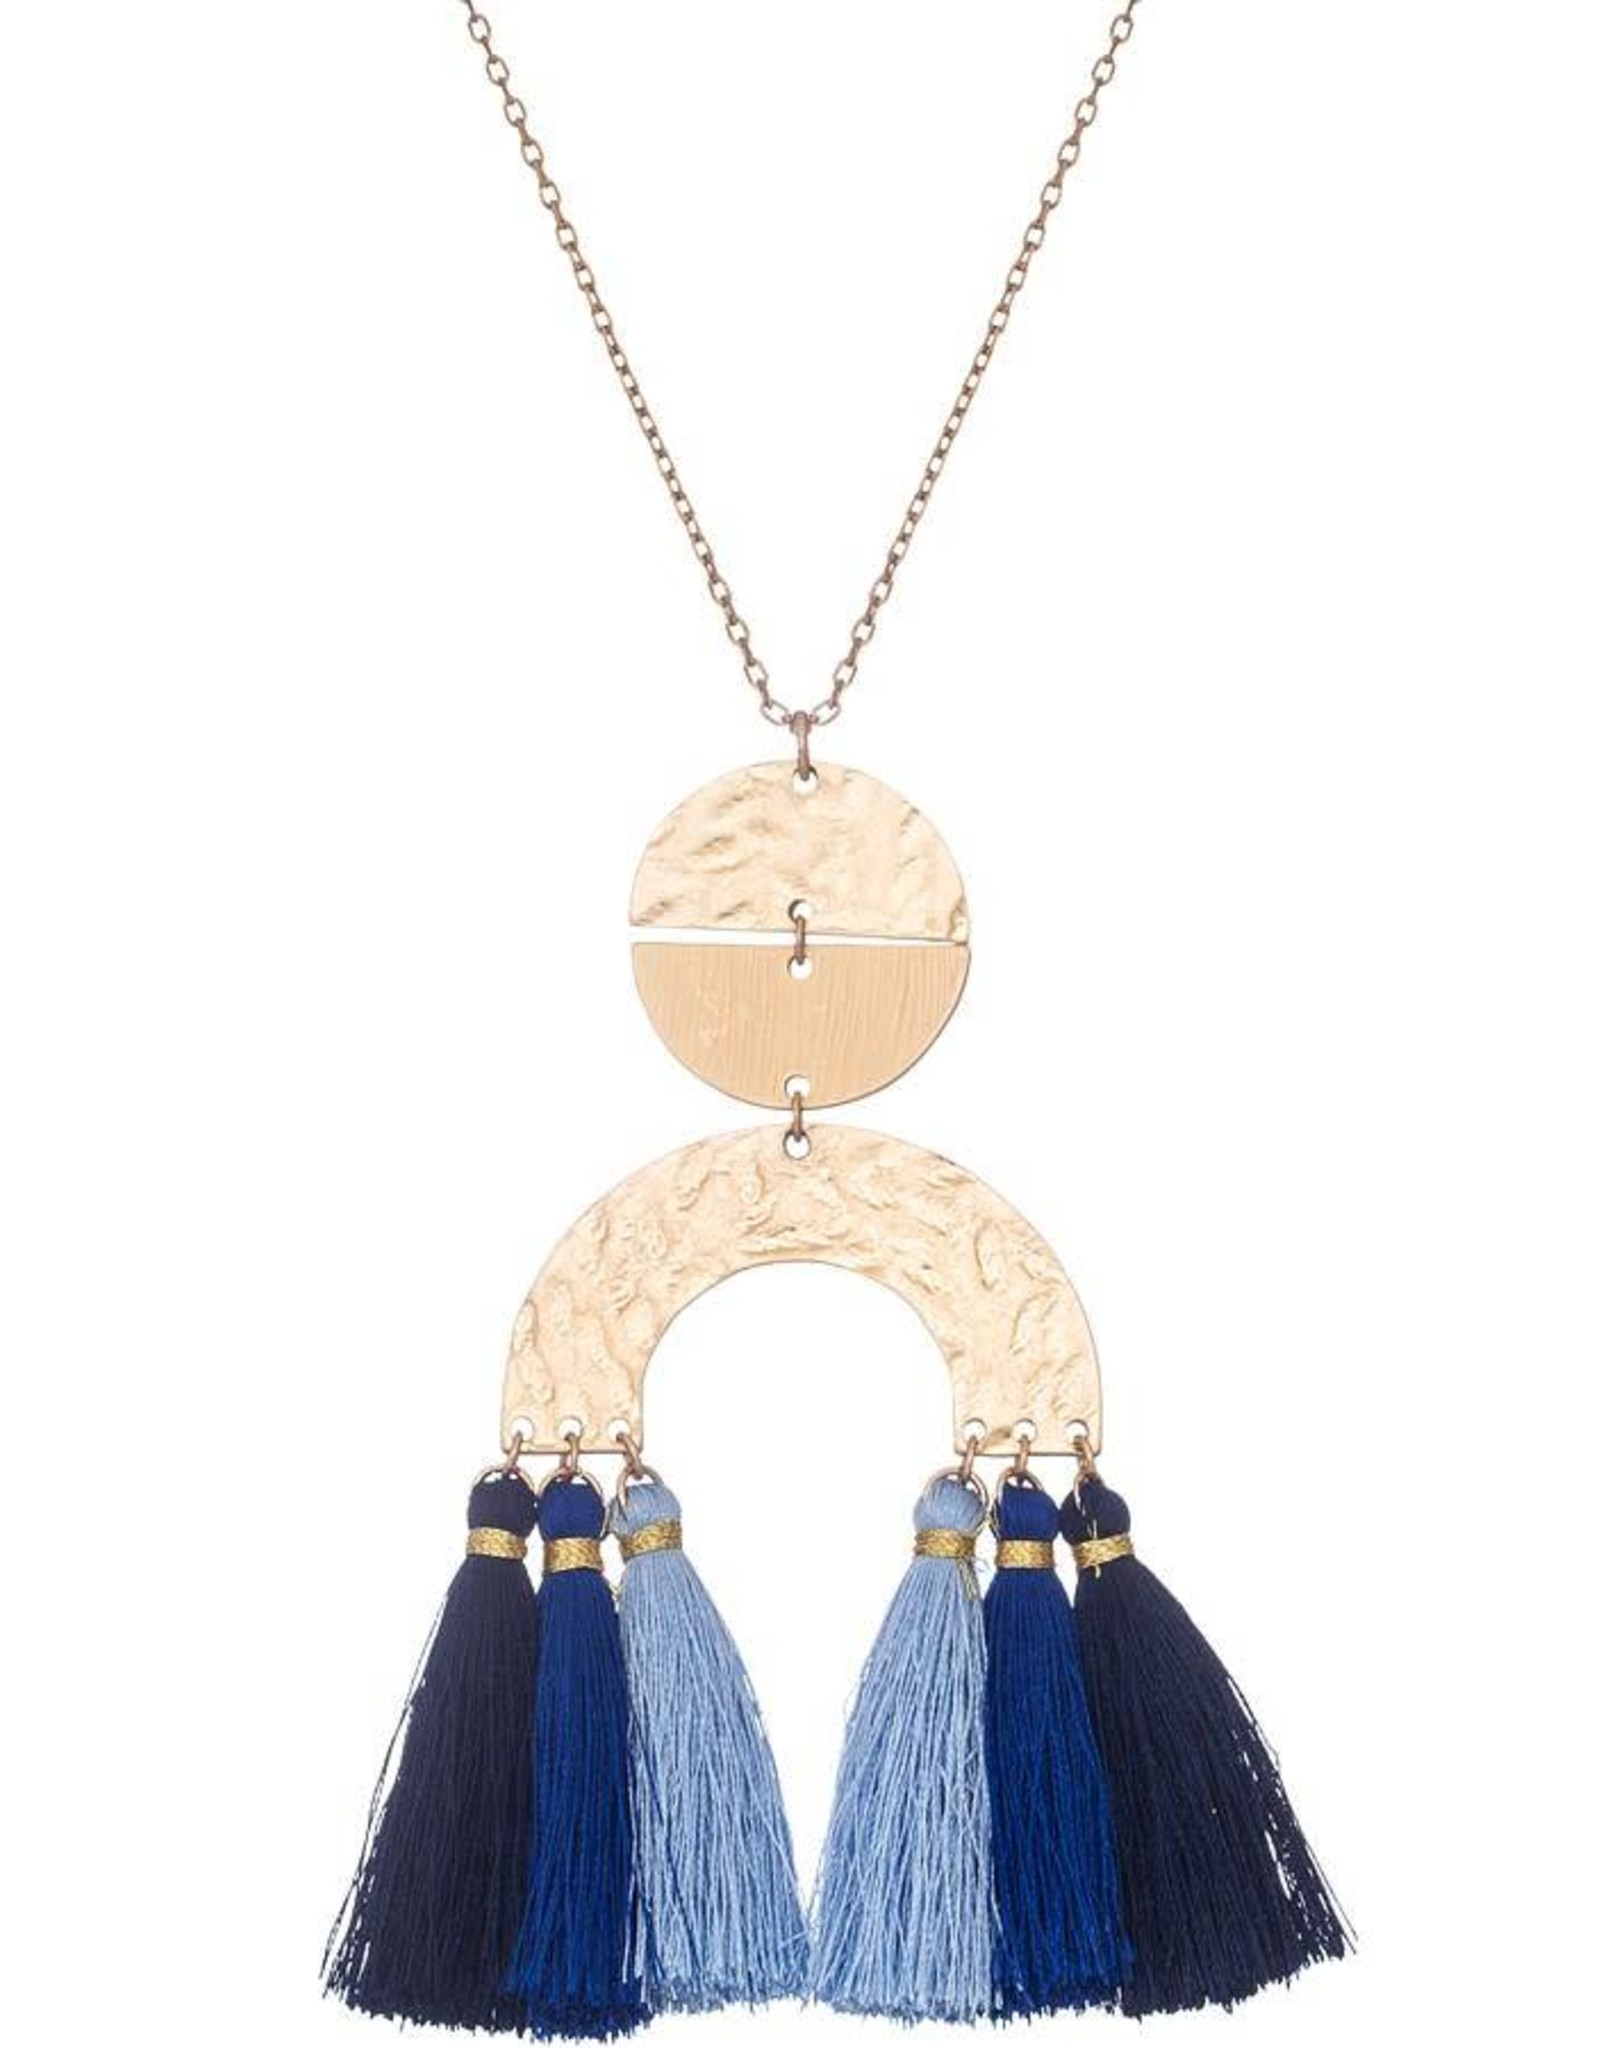 HAMMERED PENDANT NECKLACE W/ FABRIC TASSELS